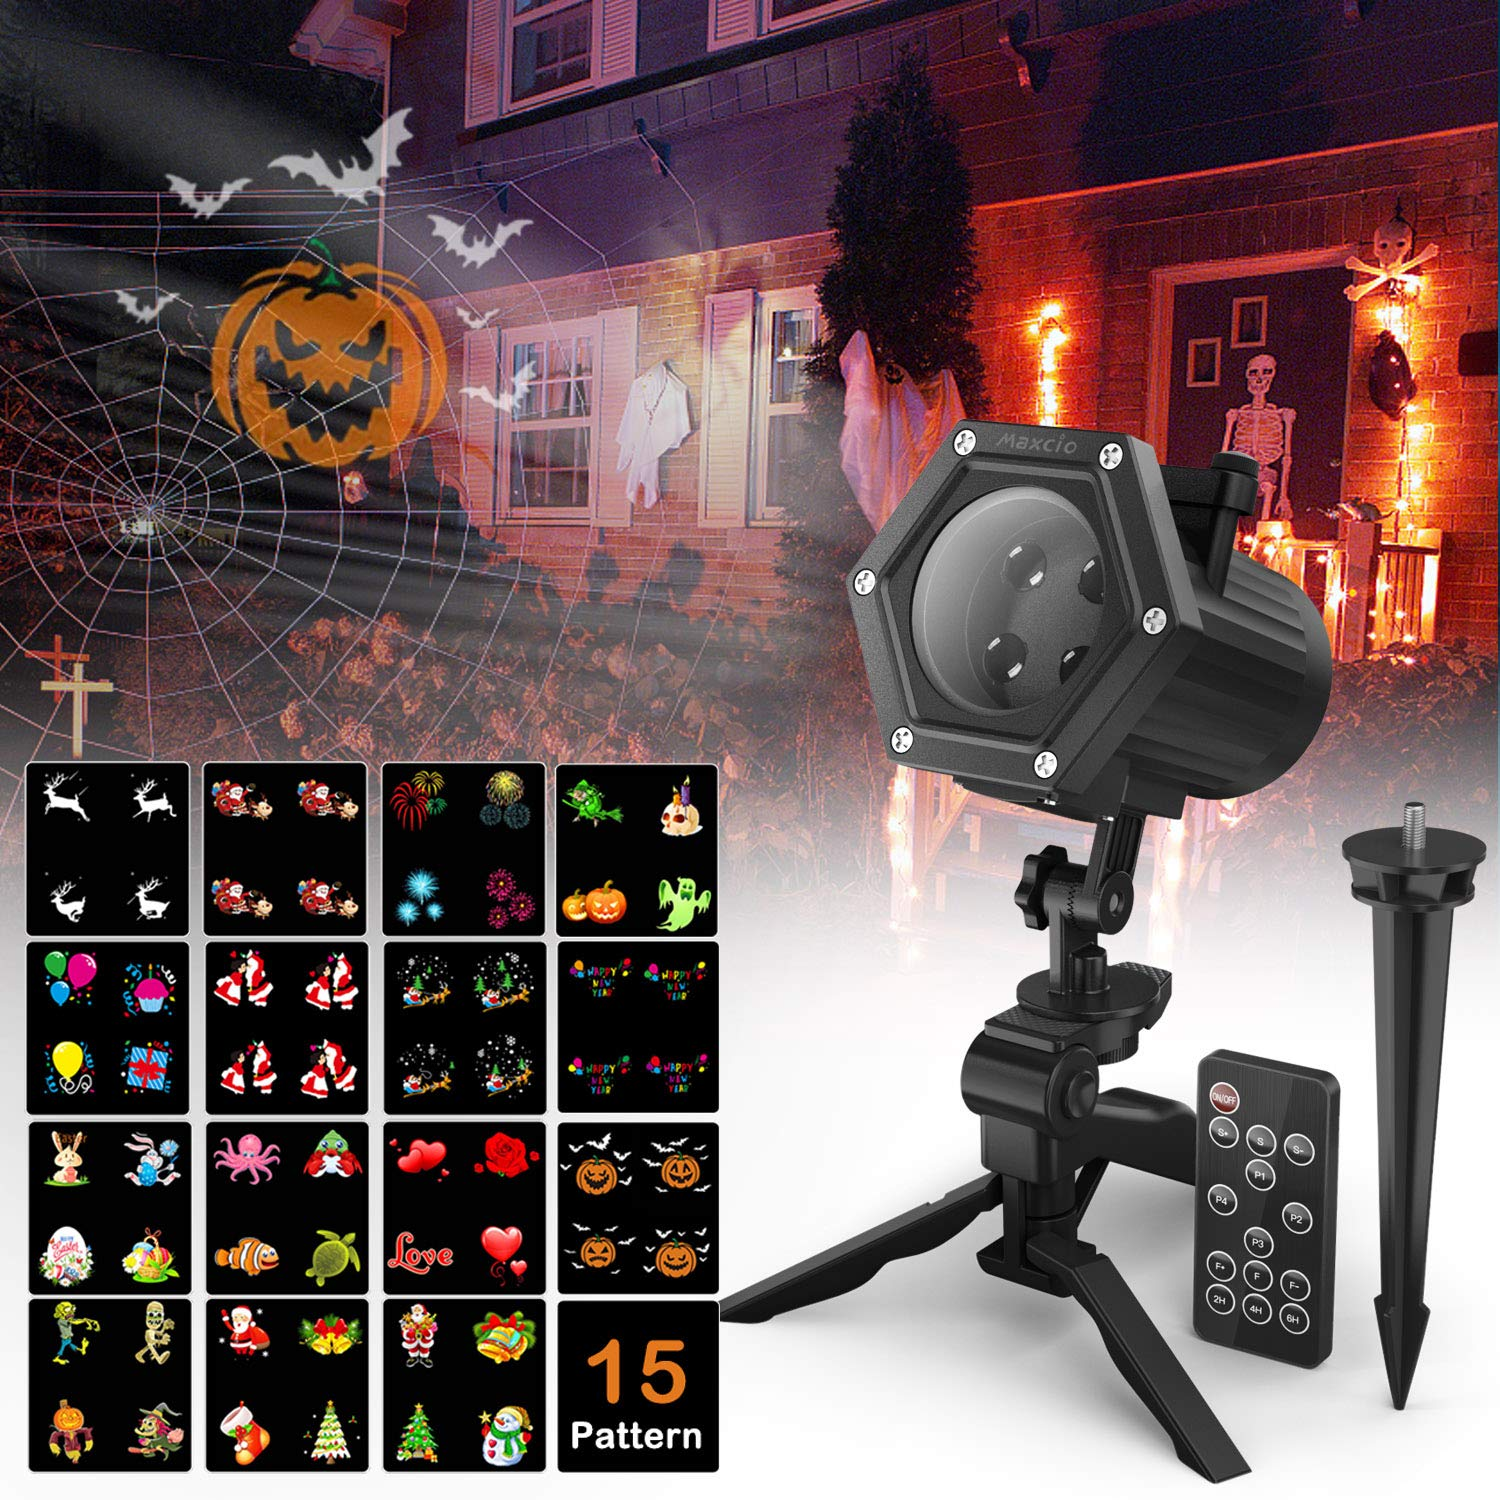 Christmas Projector Lights, Maxcio LED Landscape Projector Lamp with 15pcs Replaceable Pattern Slides and Remote Control for Xmas, Halloween, Birthday, Party, Easter, Wedding, Holiday Decoration